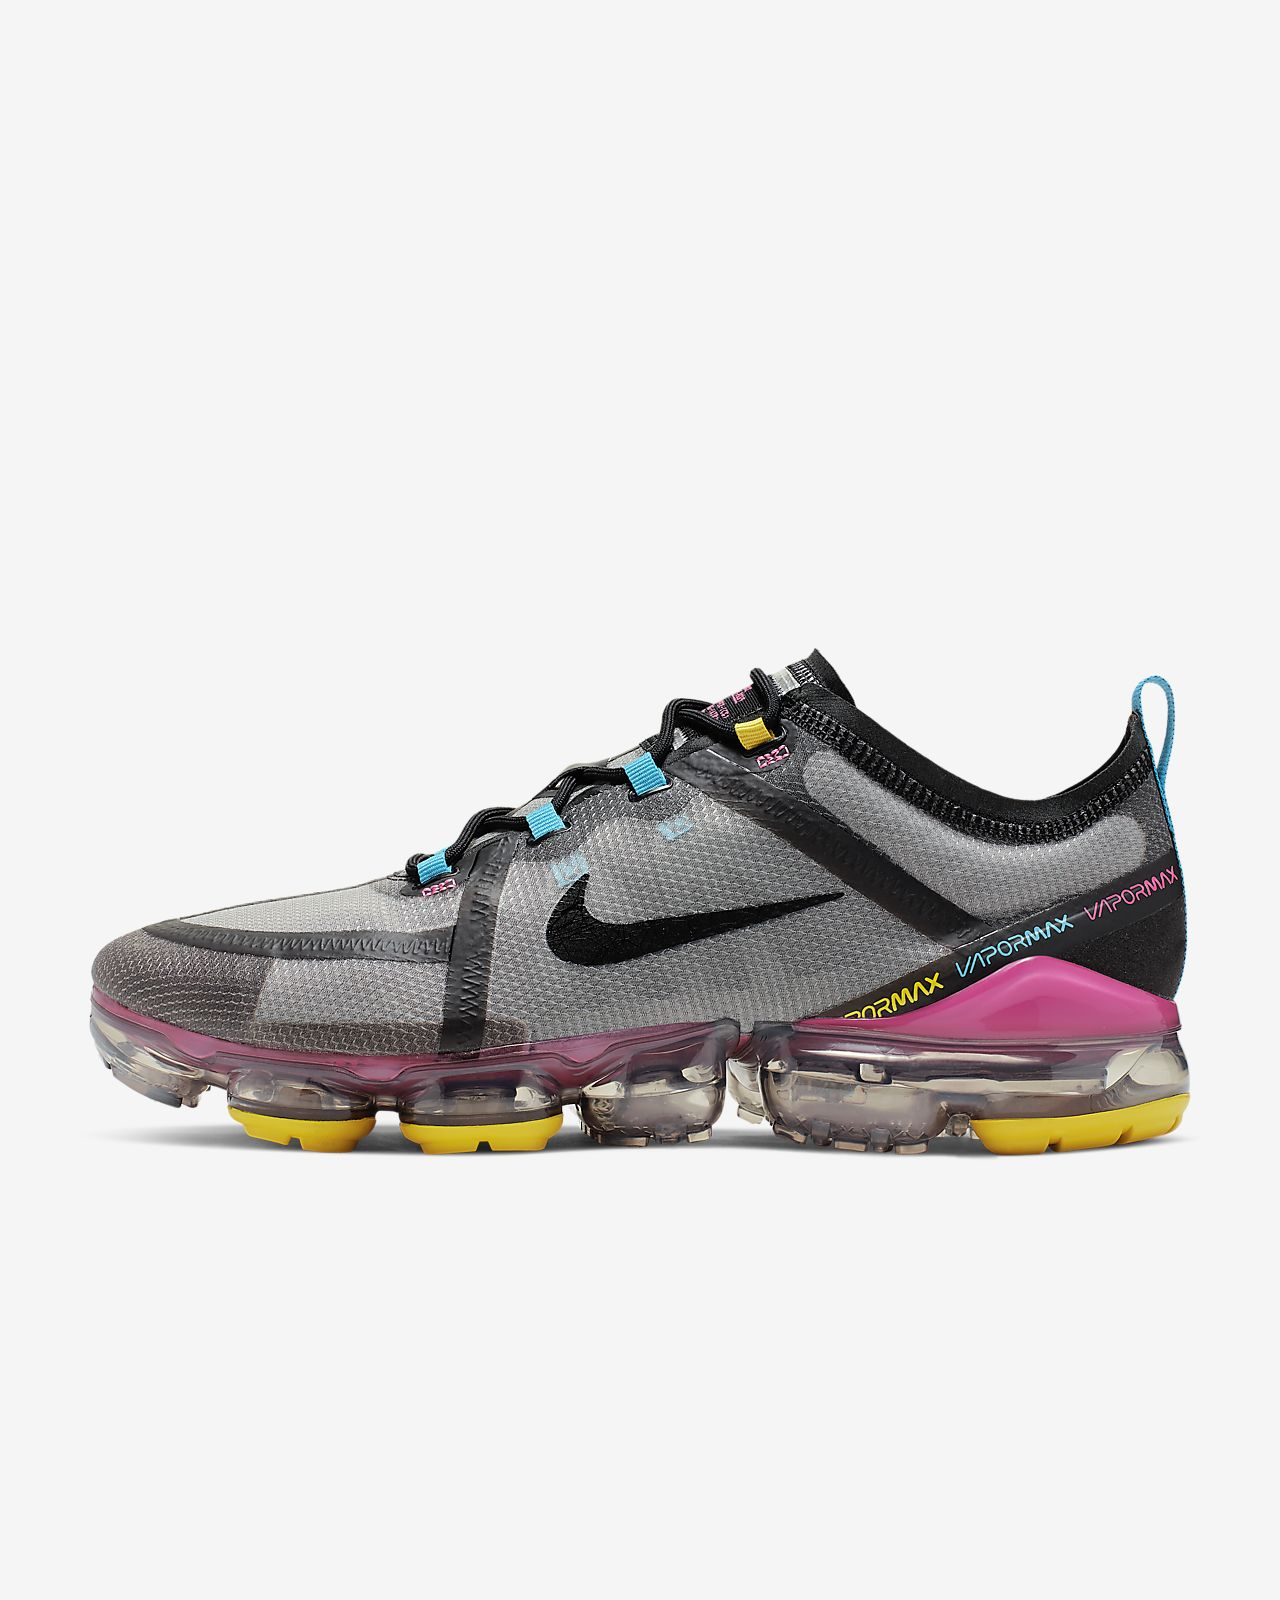 sale retailer a6da0 da8e3 ... Nike Air VaporMax 2019 Men s Shoe